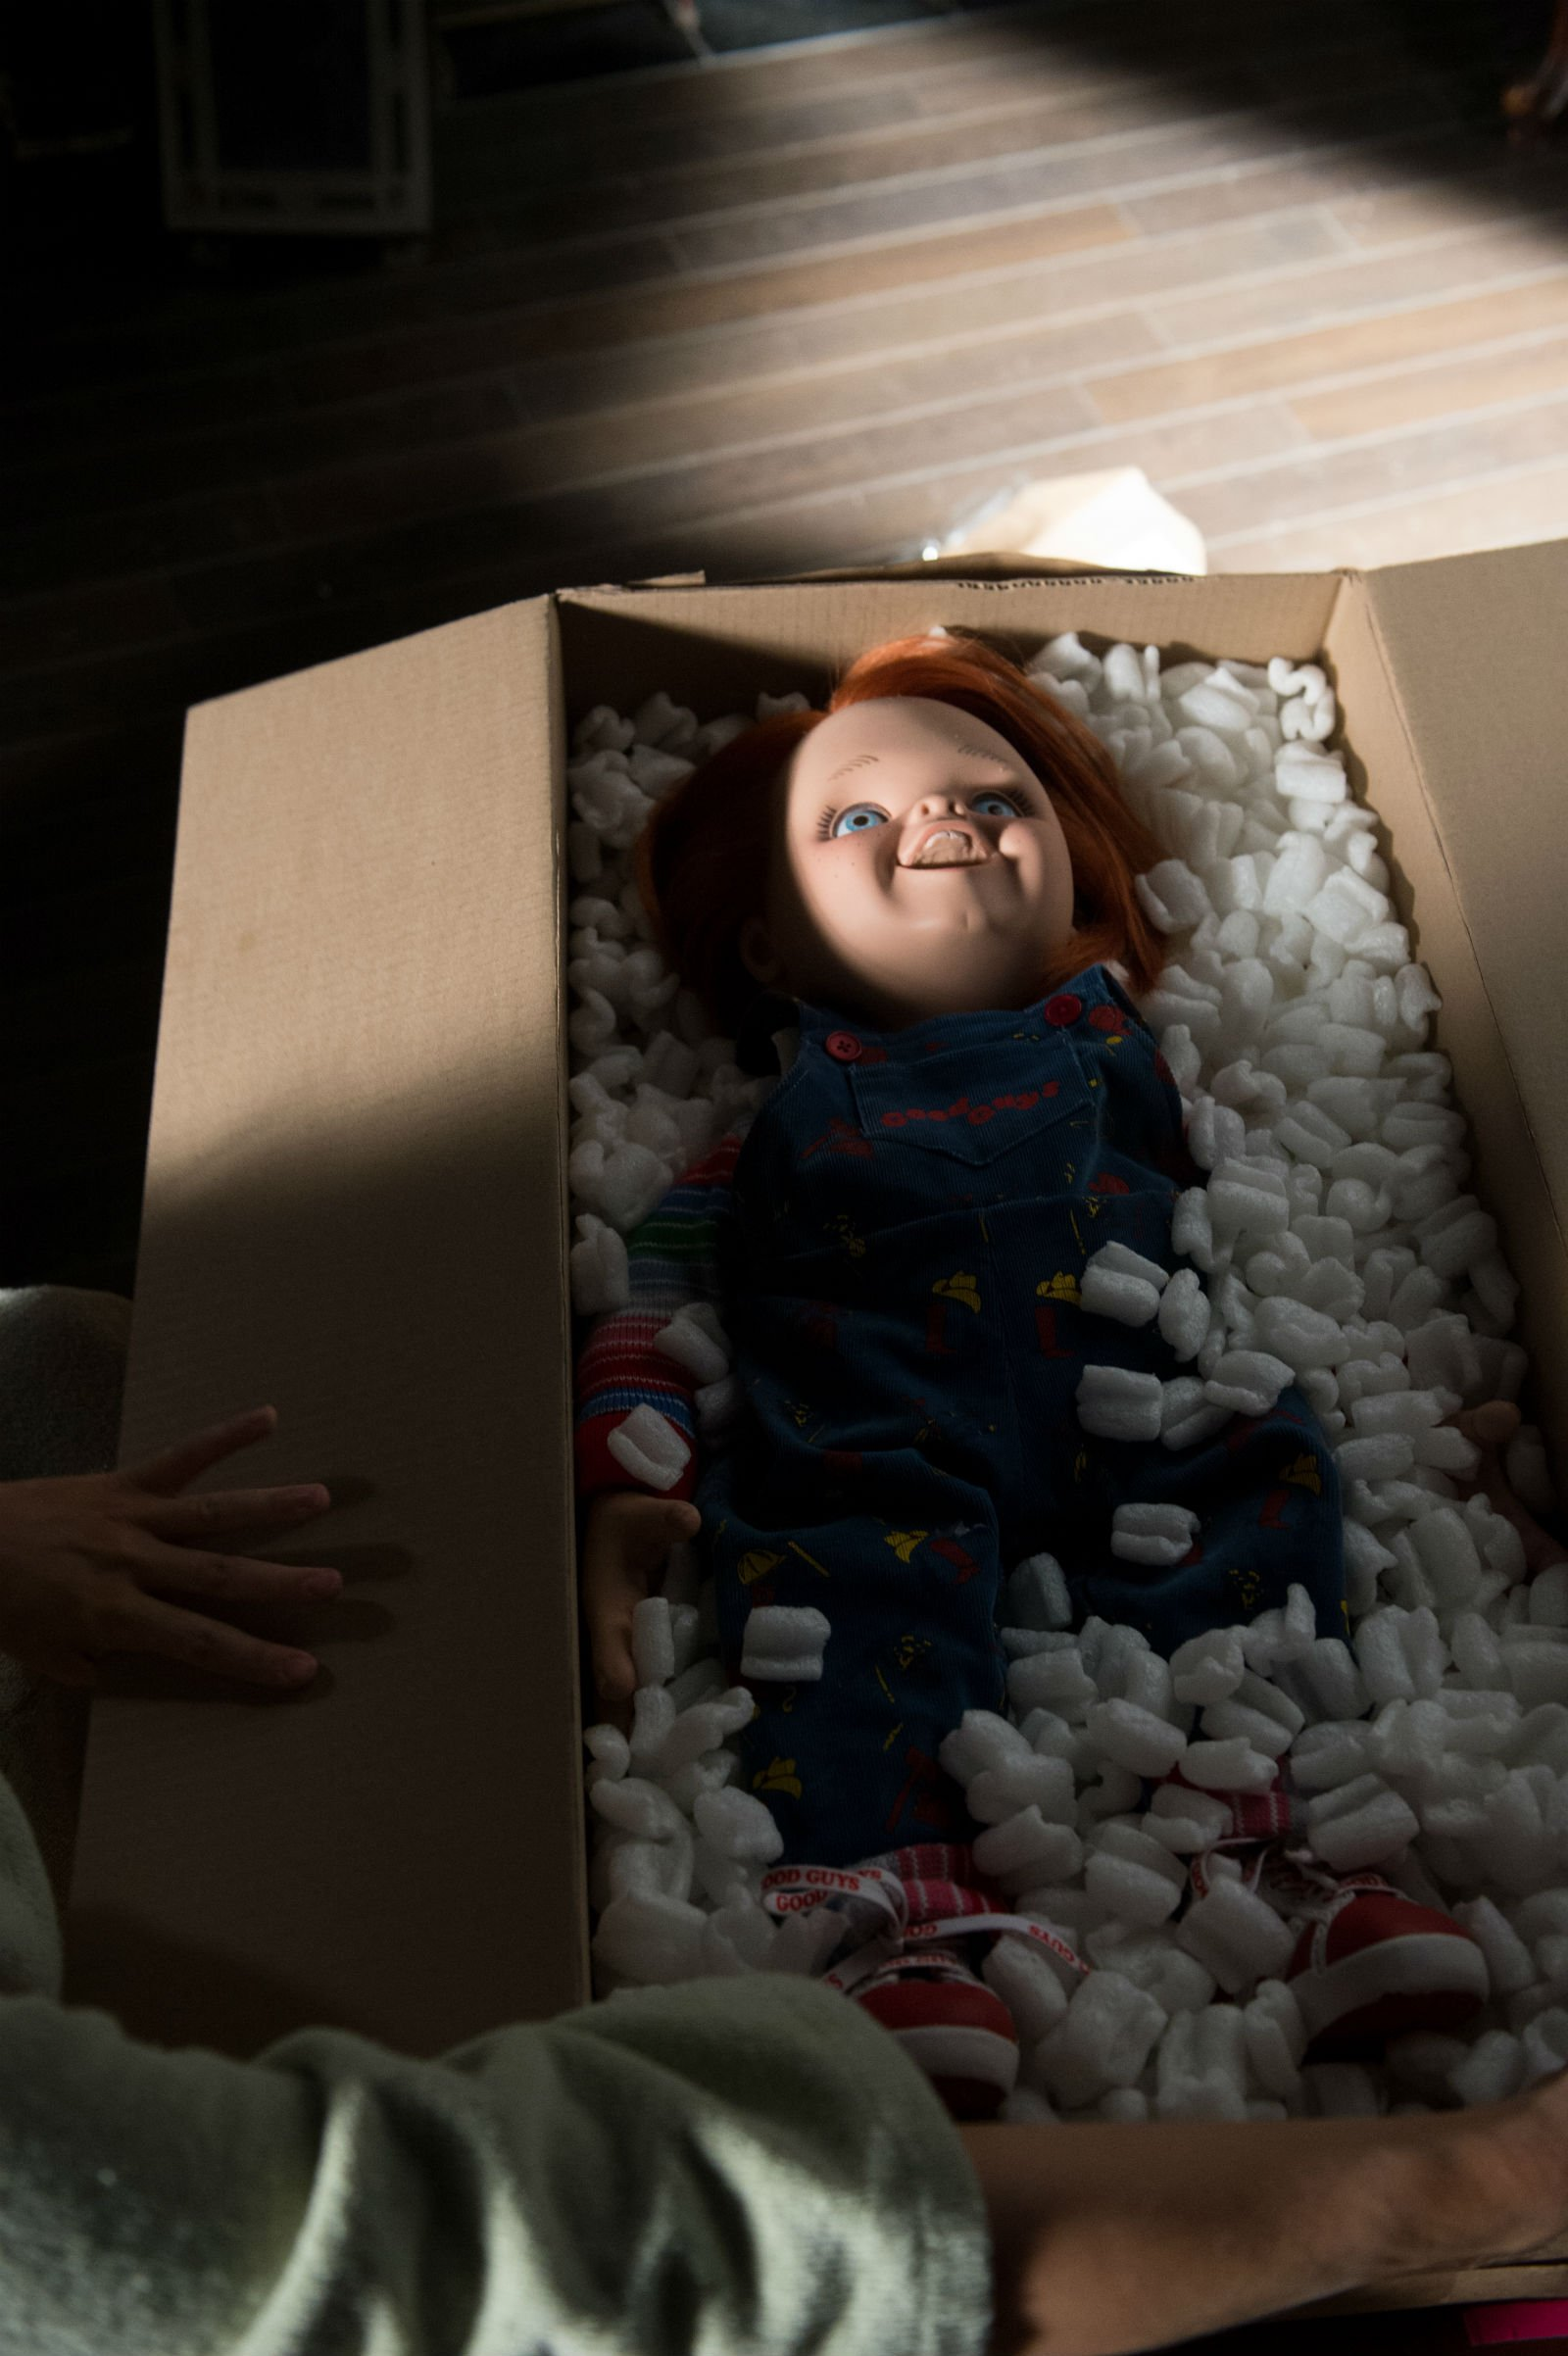 First Images From Curse of Chucky Released